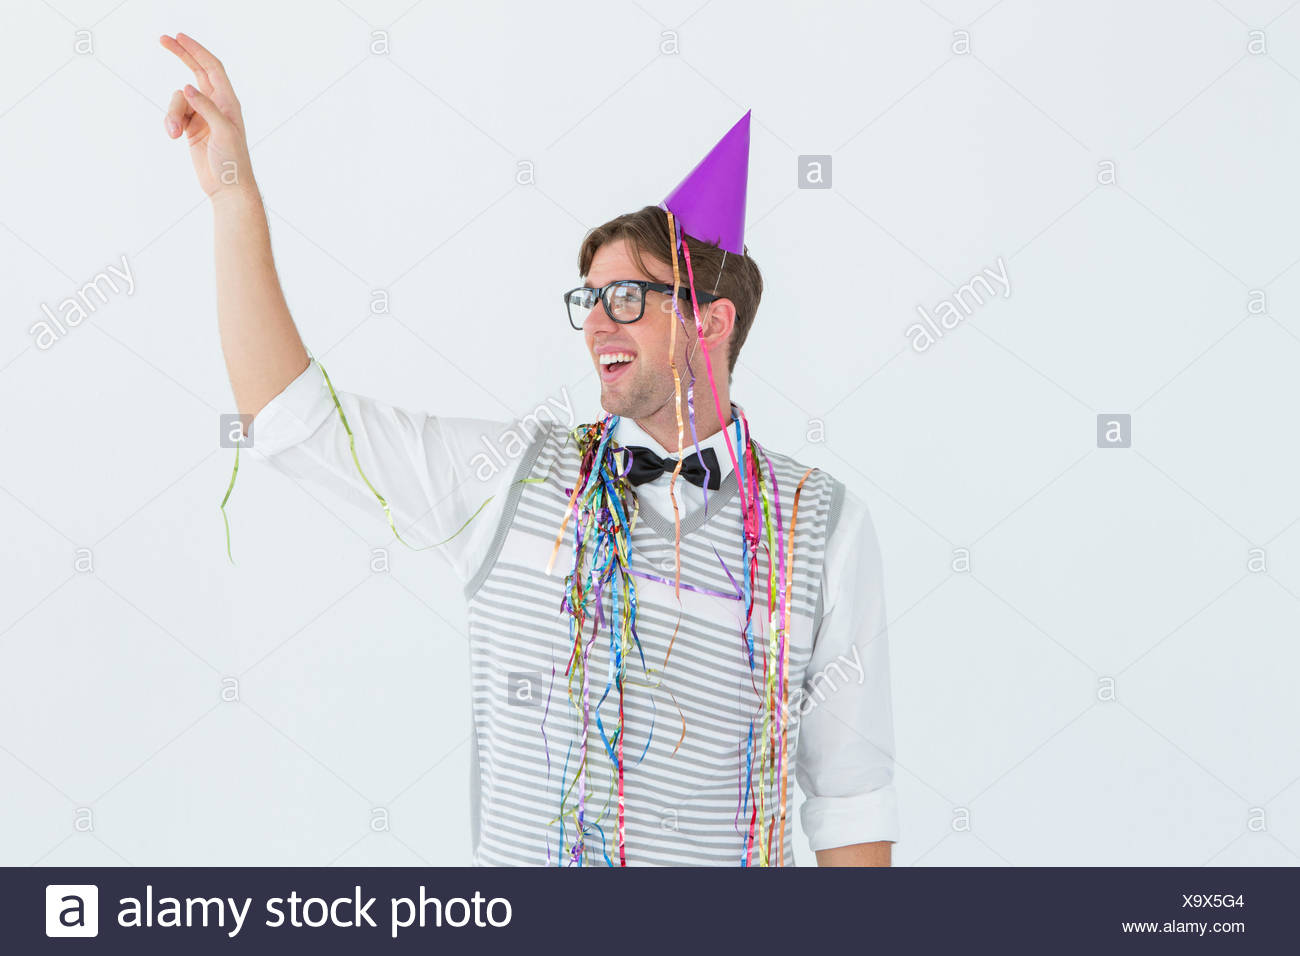 Geeky hipster pointing something - Stock Image